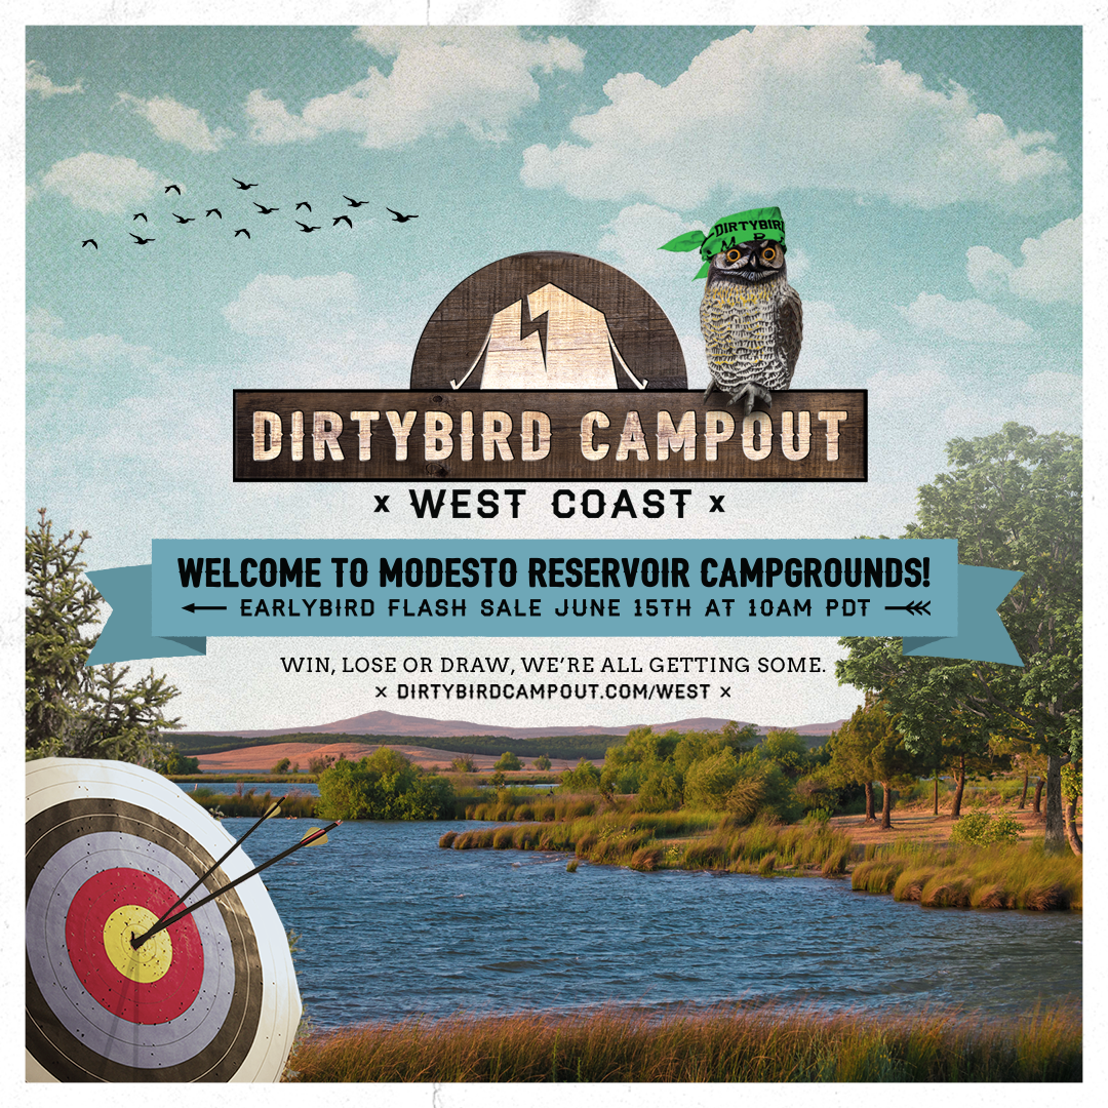 Dirtybird Campout Announces New Location for 2018 West Coast Event